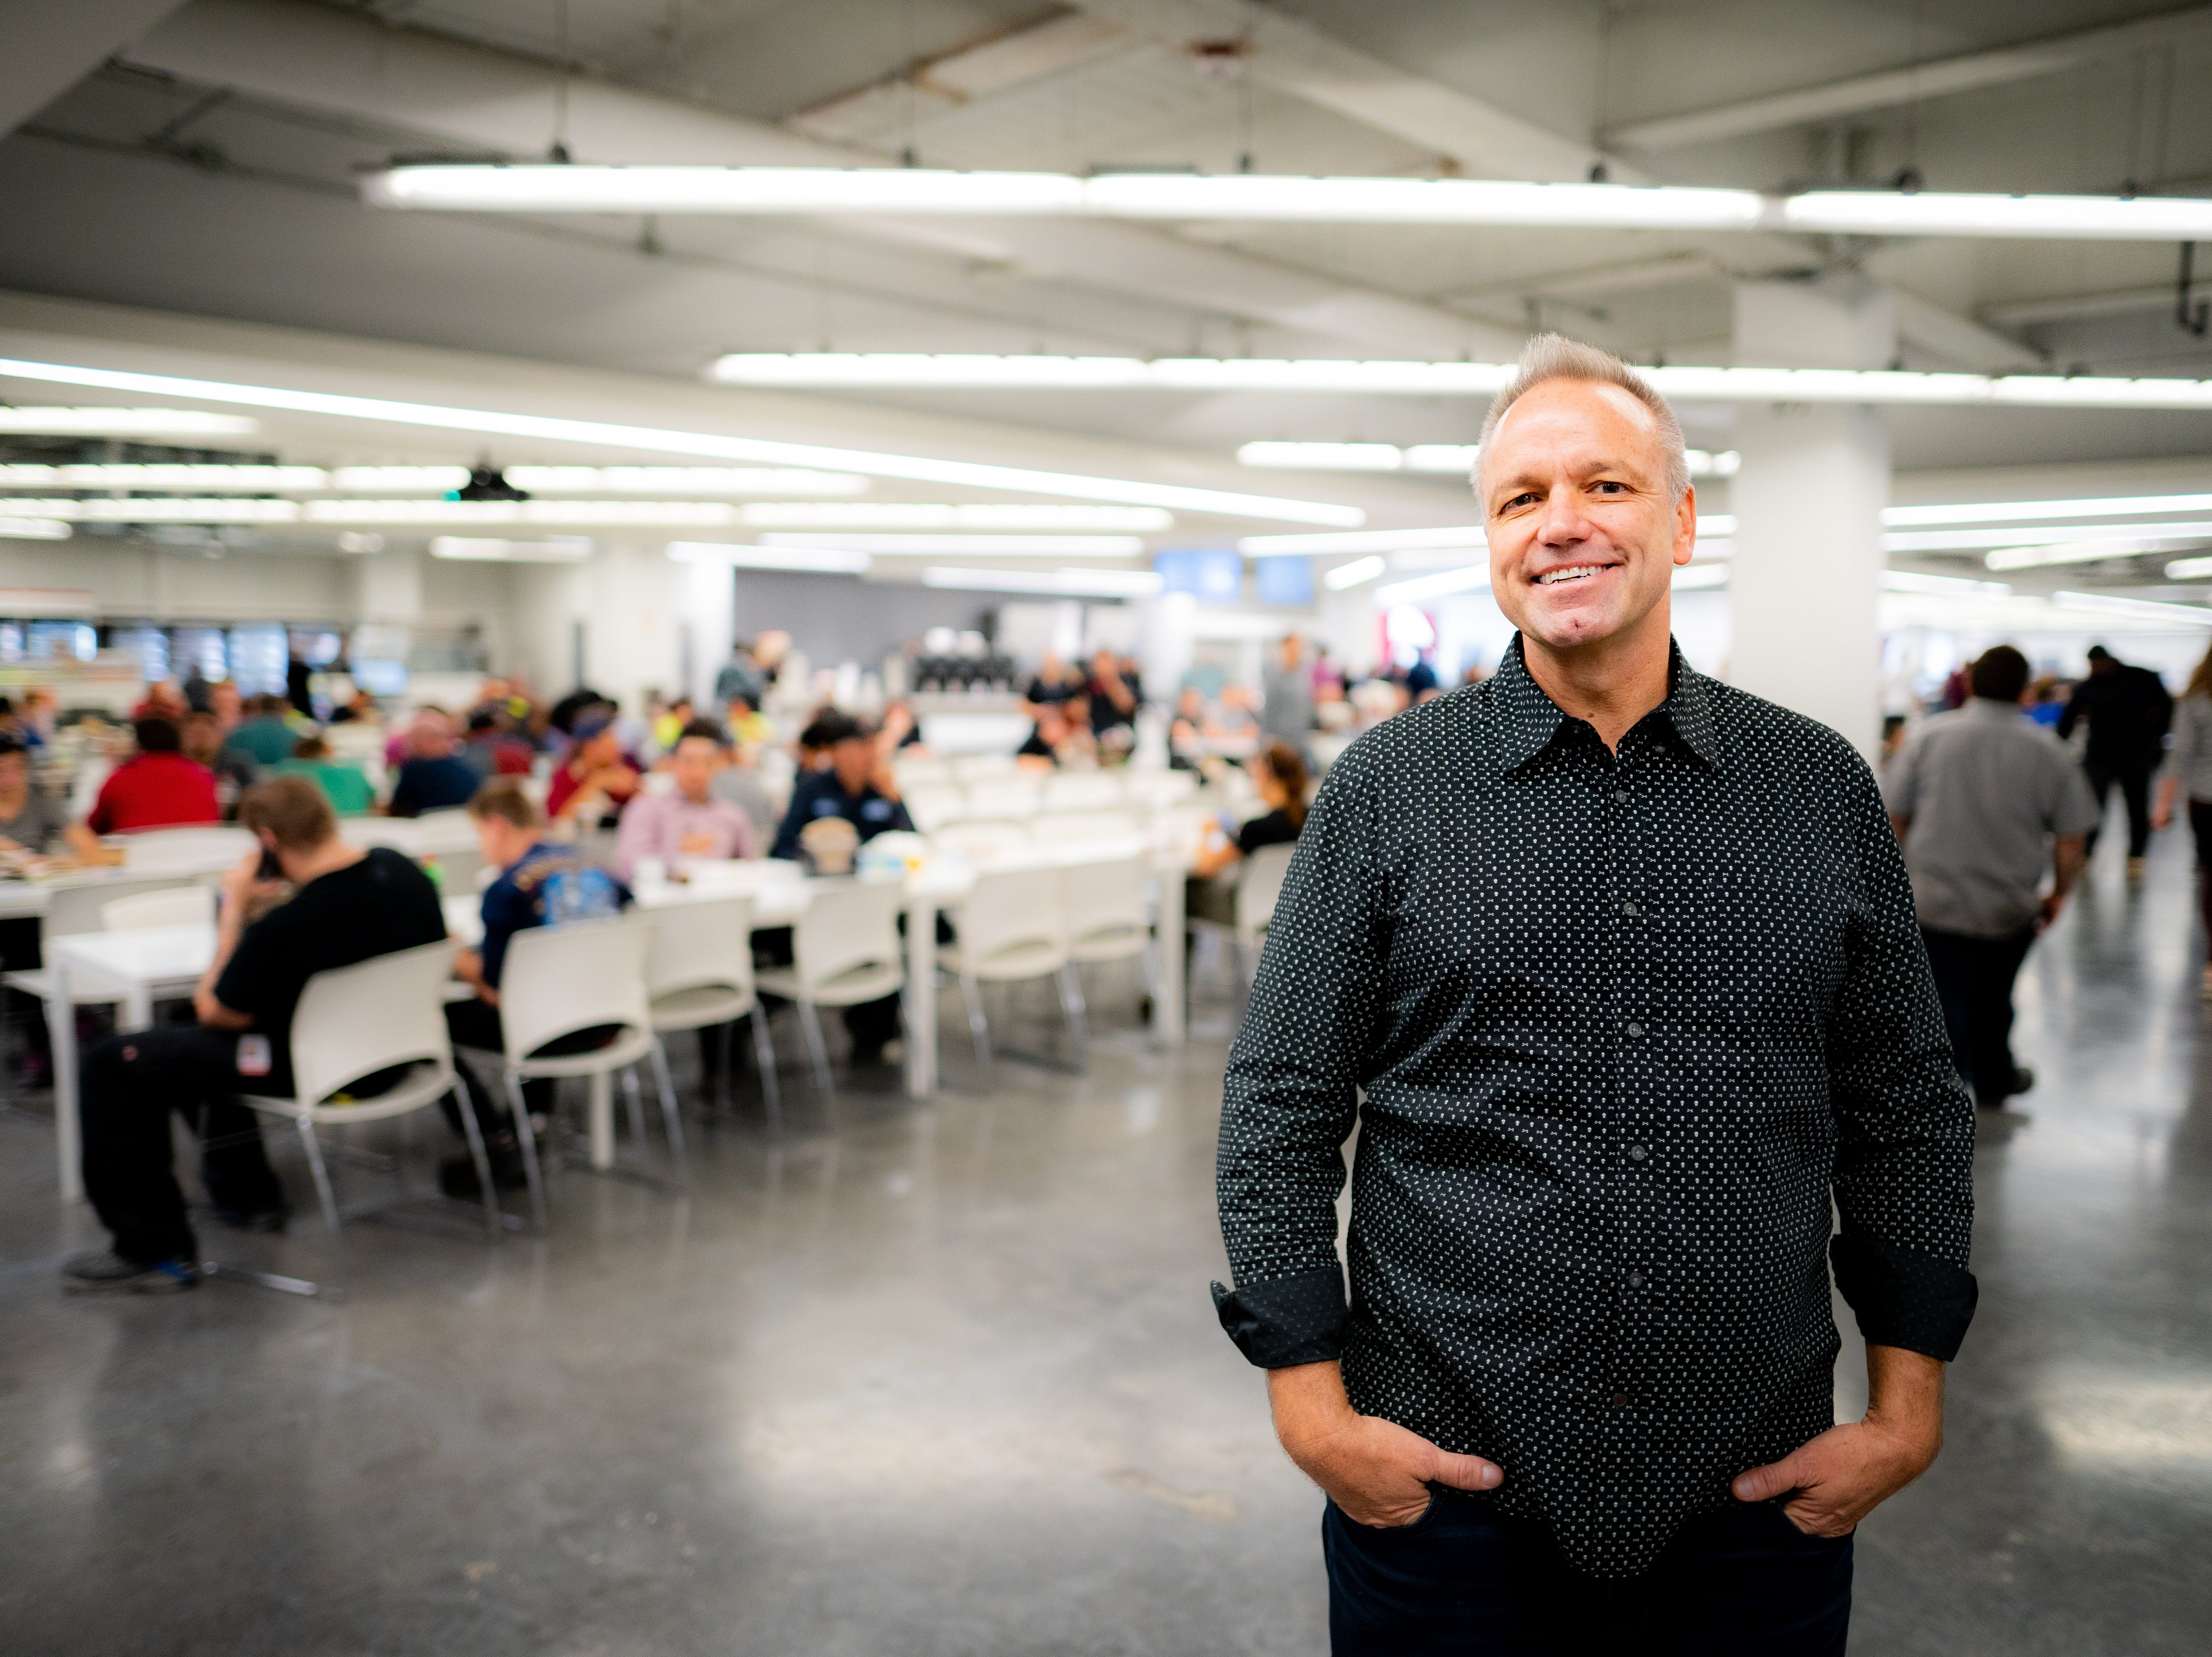 Anton Novak, co-owner of Rounds Bakery of Reno, operates nine markets at the Tesla Gigafactory east of the city. He estimated Rounds would have 11 by the end of 2018.